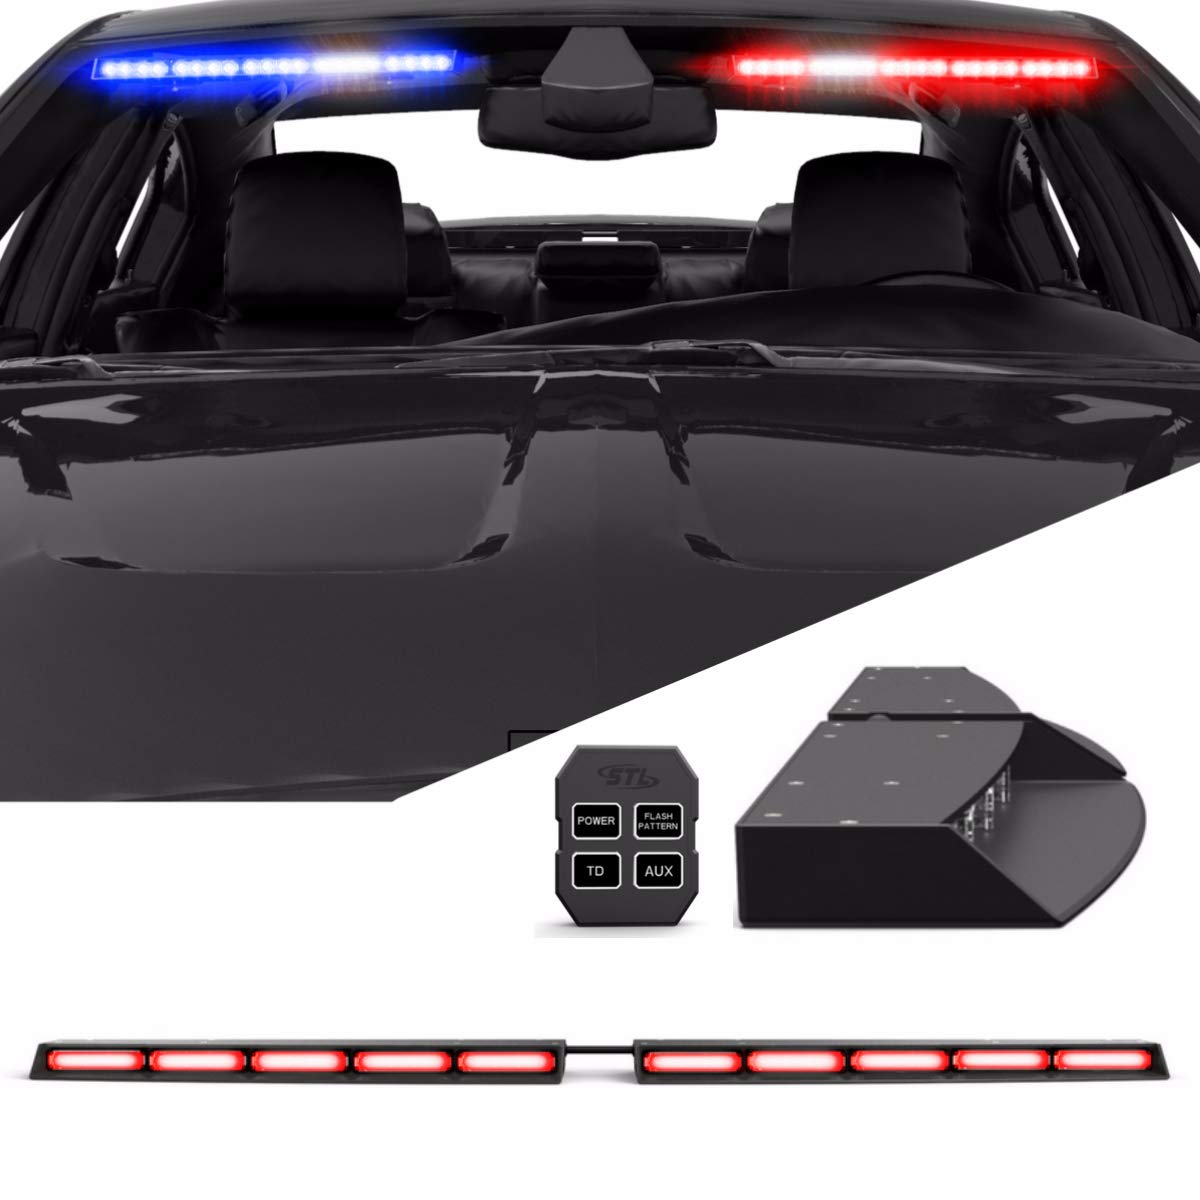 Raptor TIR Interior Upper Windshield Split LED Visor Light Bar for Emergency Vehicle Warning Visor Lights - Red/Red